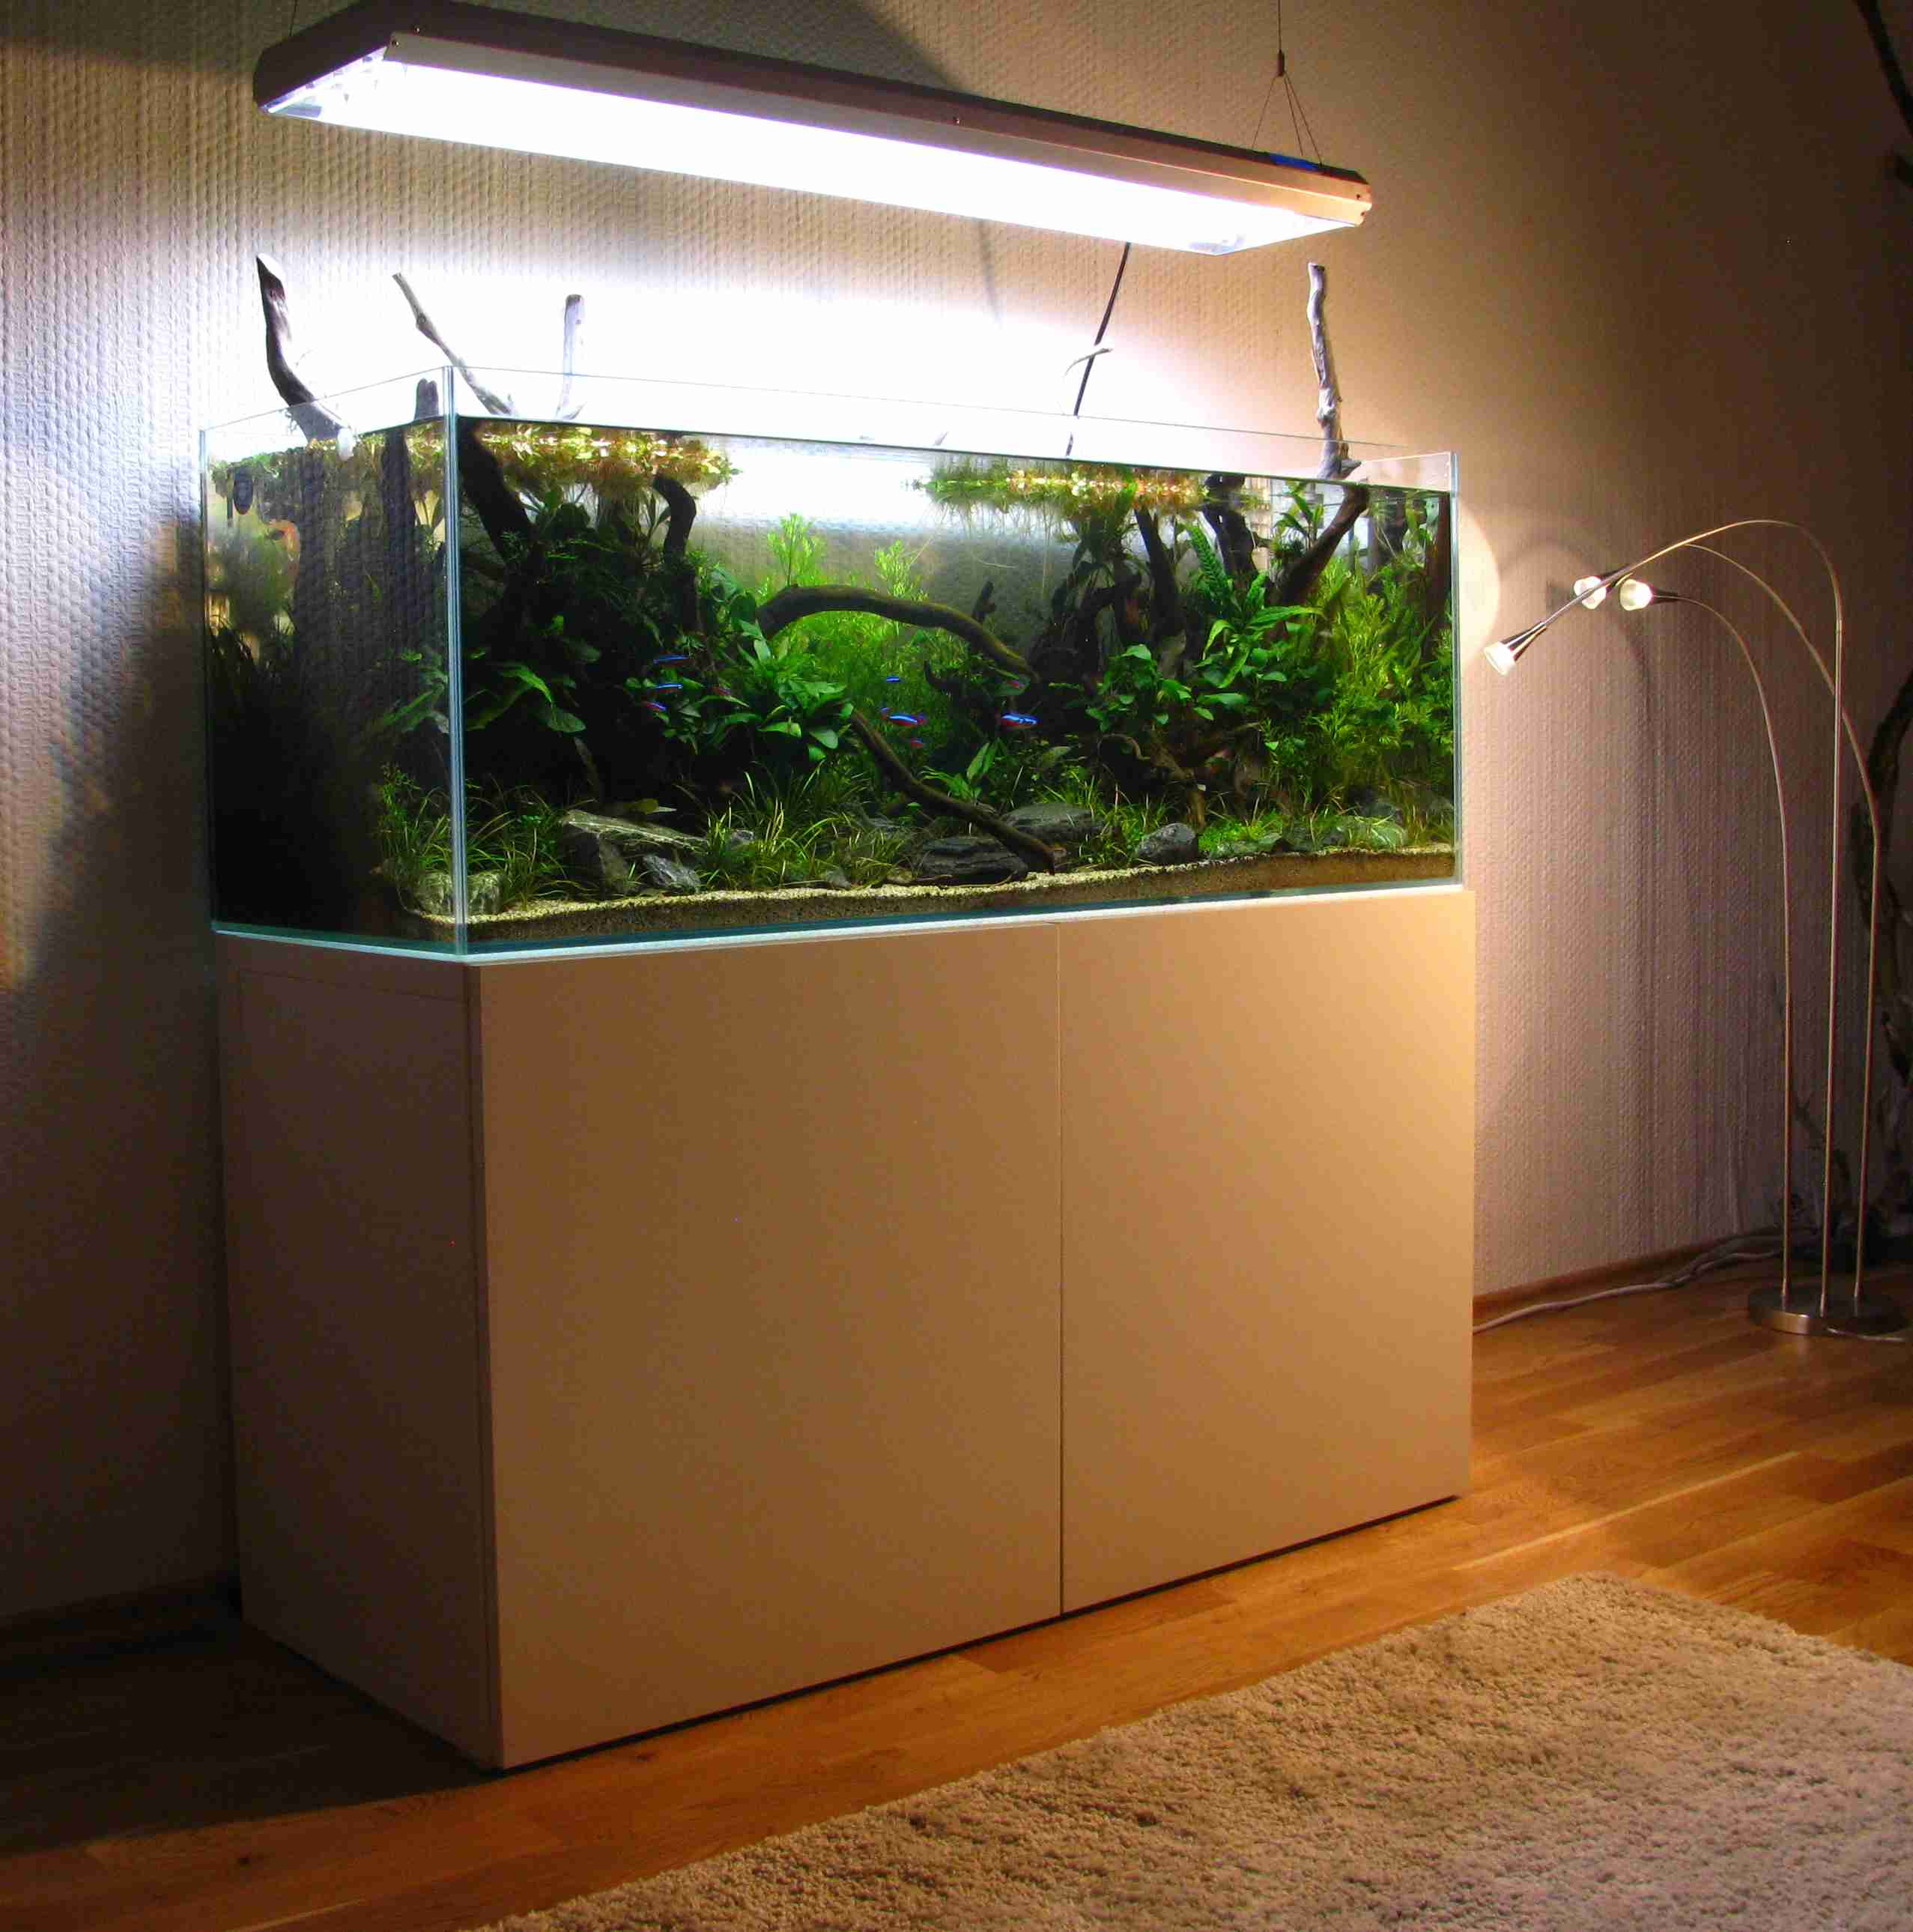 aquarium schrank alu profile geschichte von zu hause aus. Black Bedroom Furniture Sets. Home Design Ideas